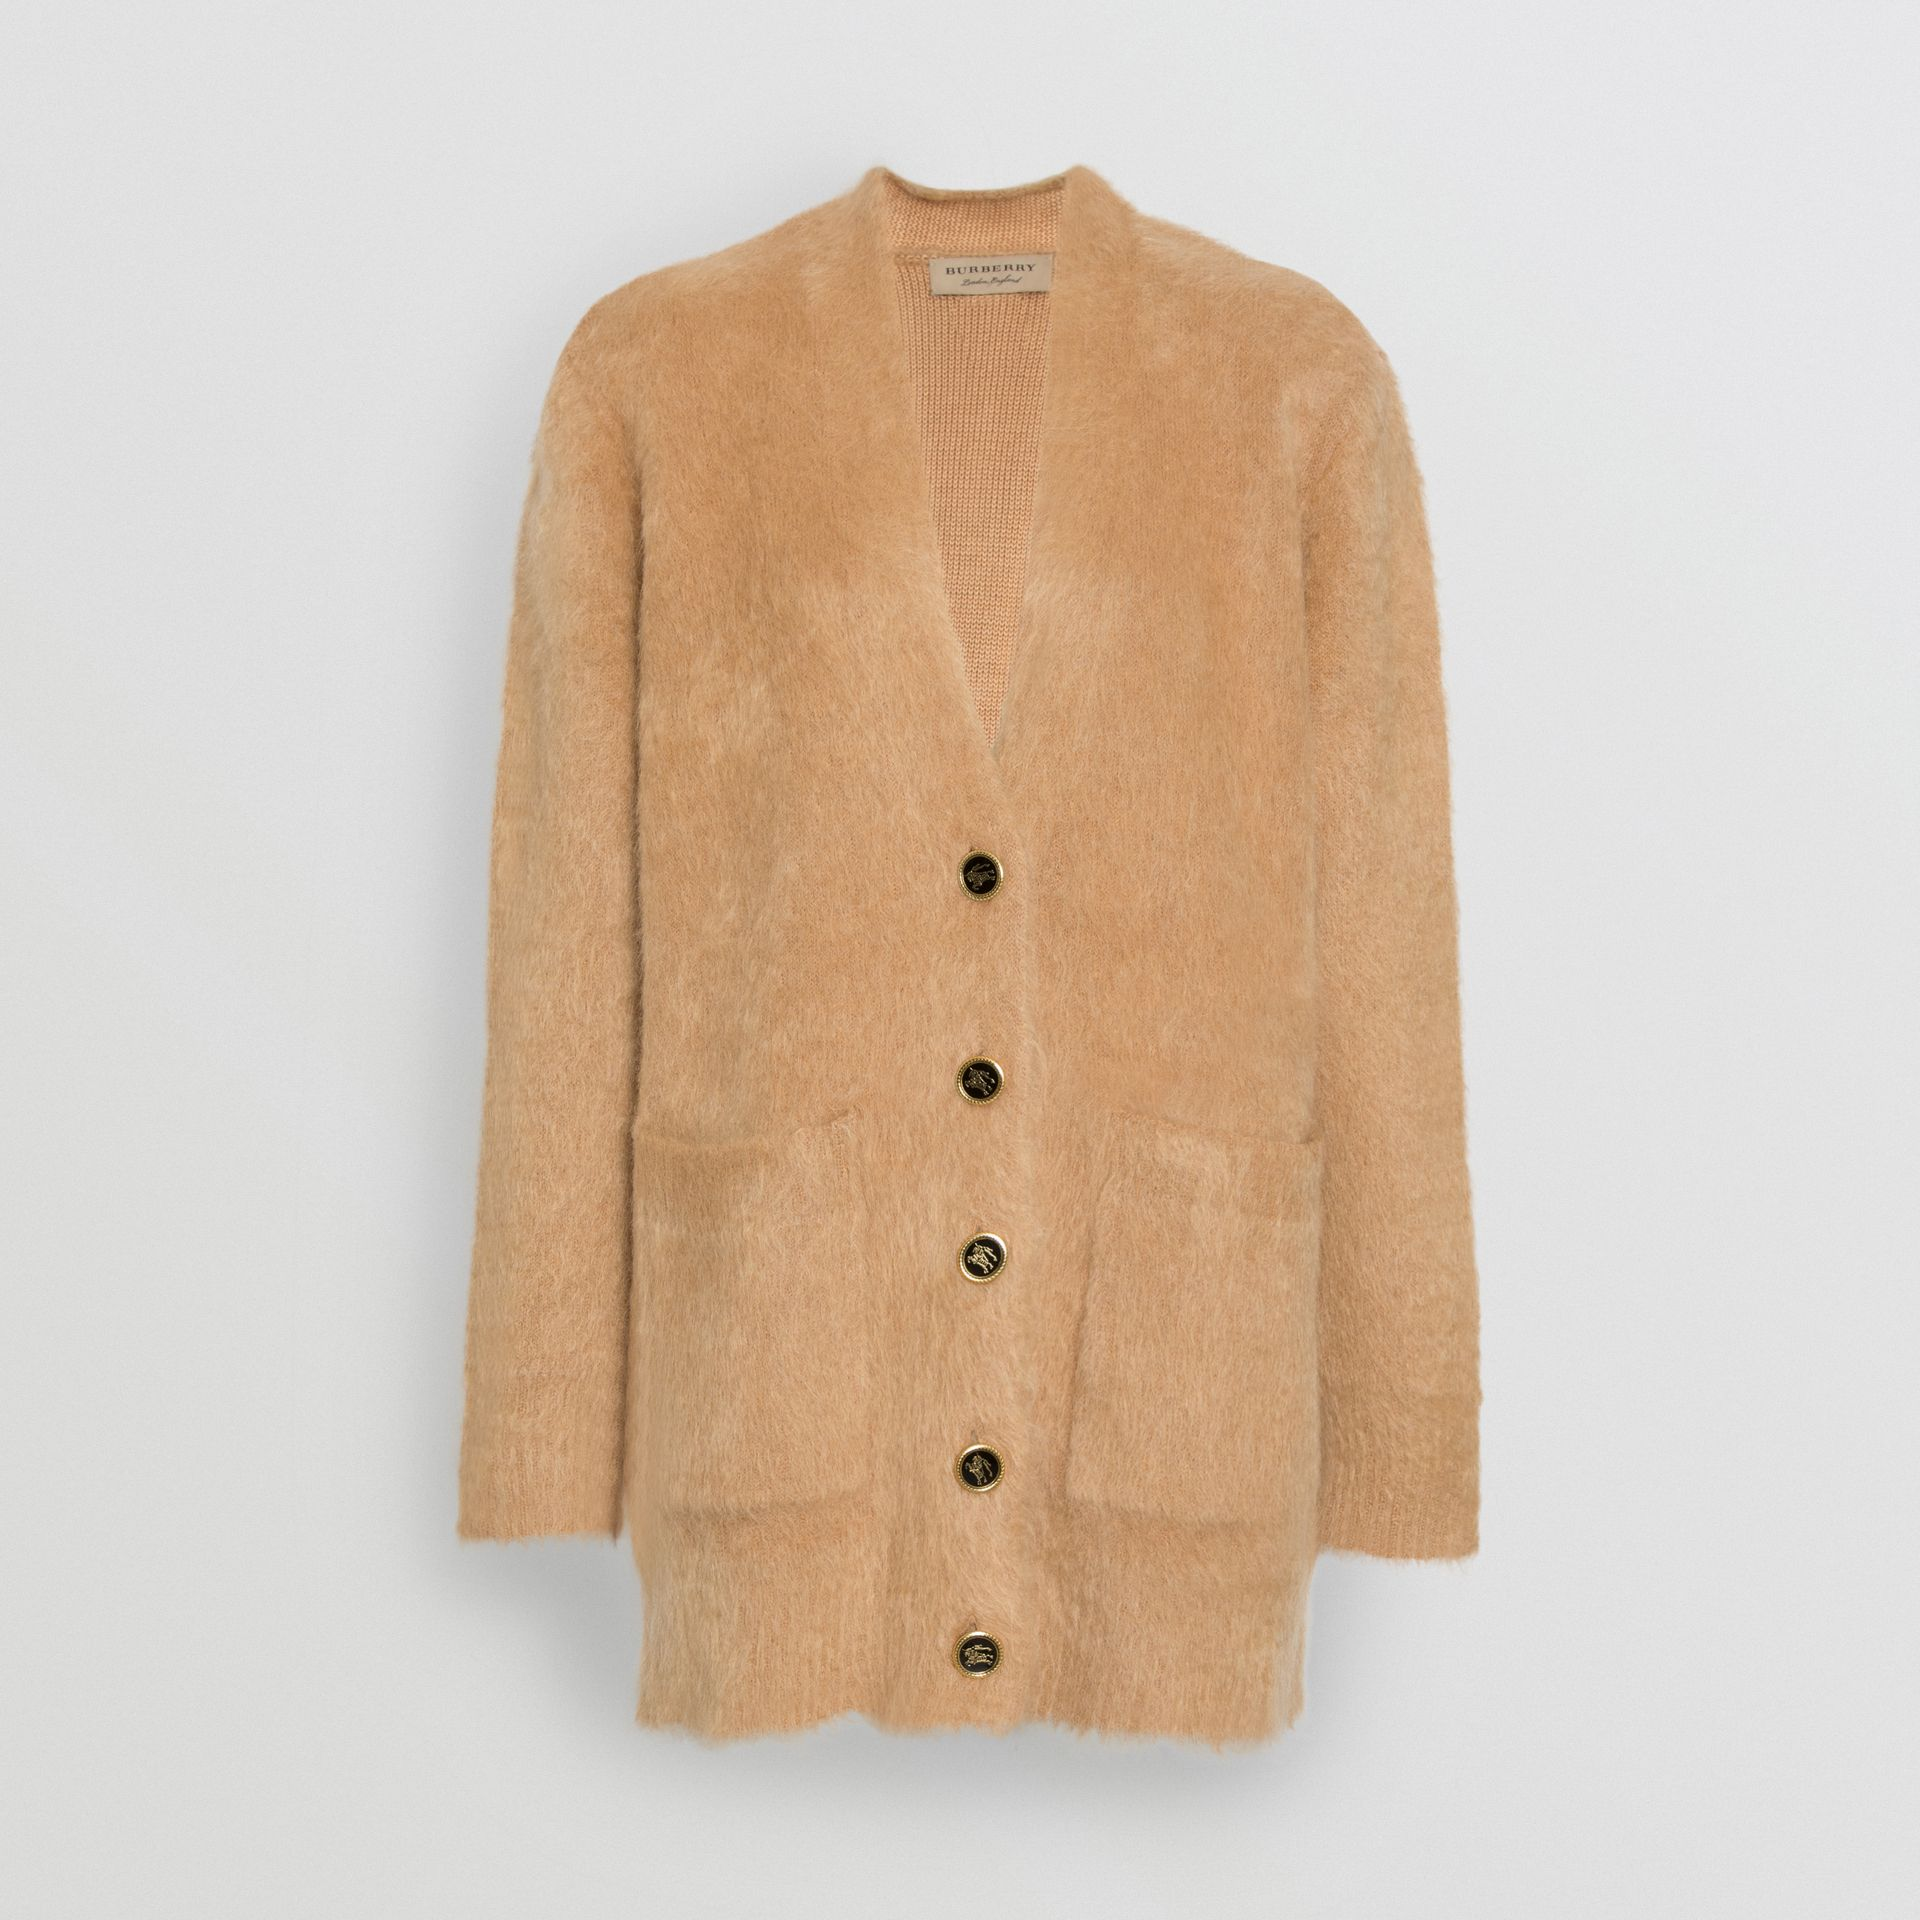 Silk Mohair Wool Blend V-neck Cardigan in Light Camel - Women | Burberry - gallery image 3